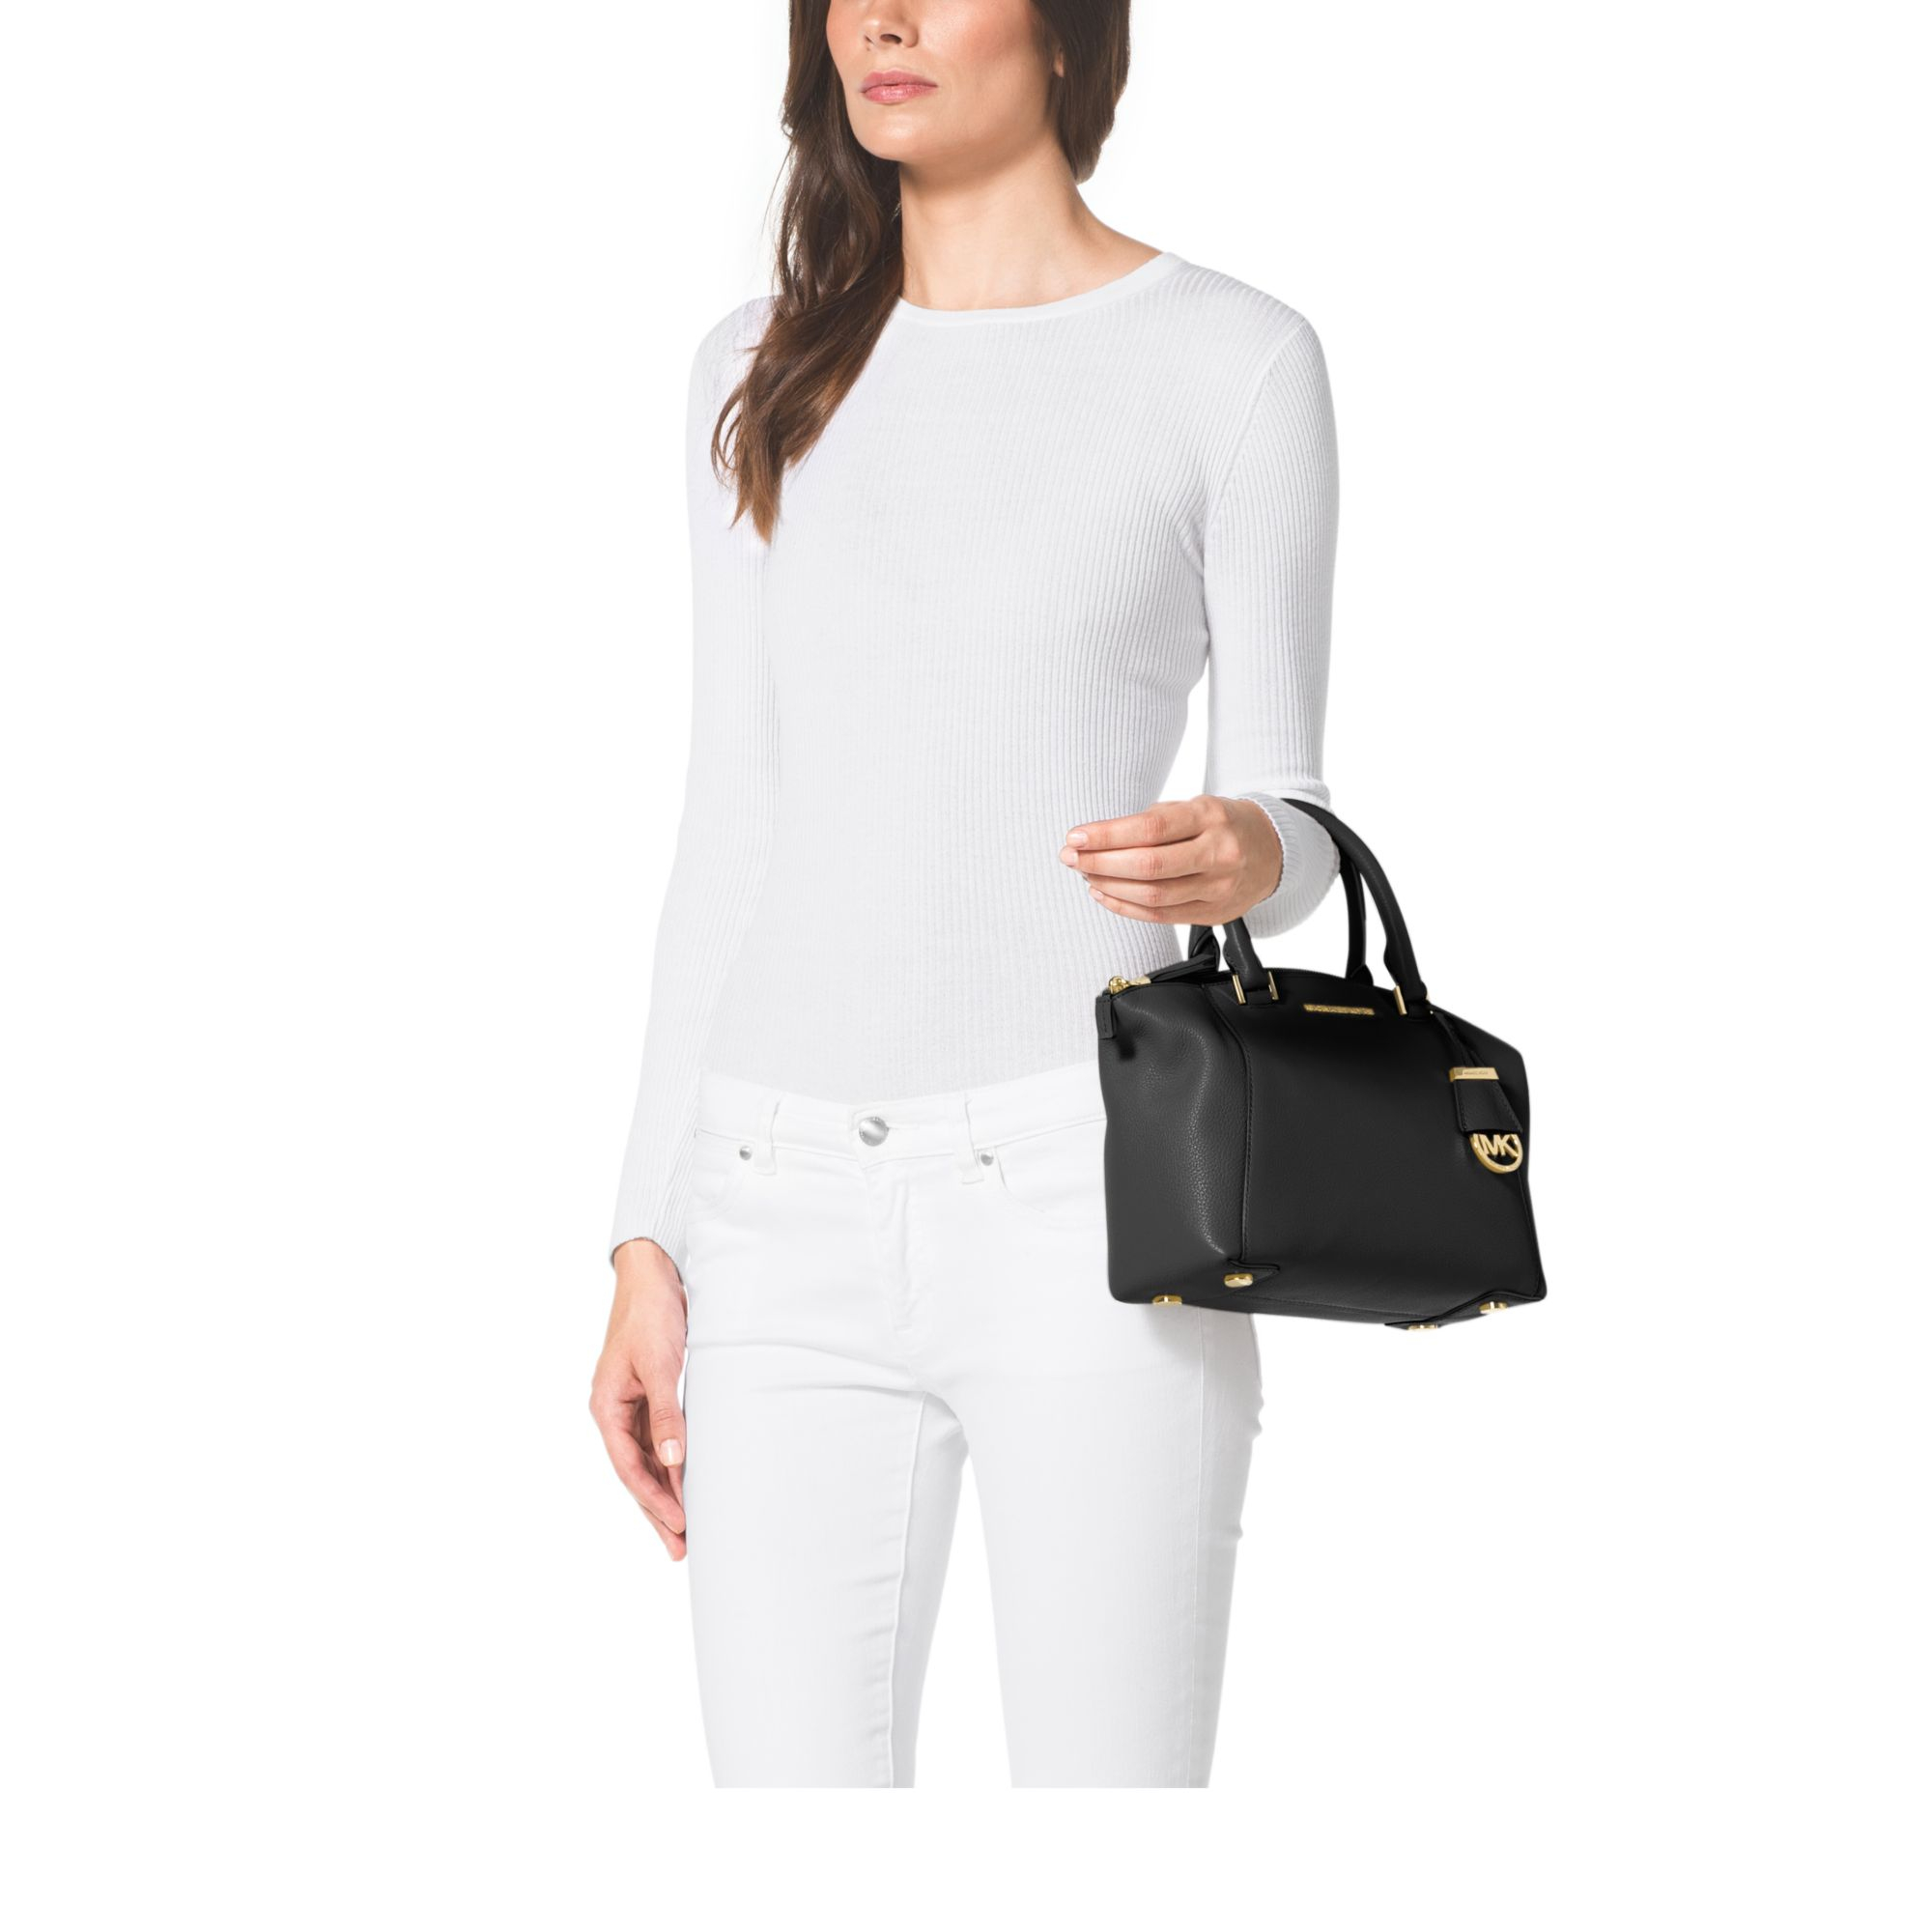 6bdad759e0e1 Lyst - Michael Kors Riley Small Pebbled-Leather Satchel in Black